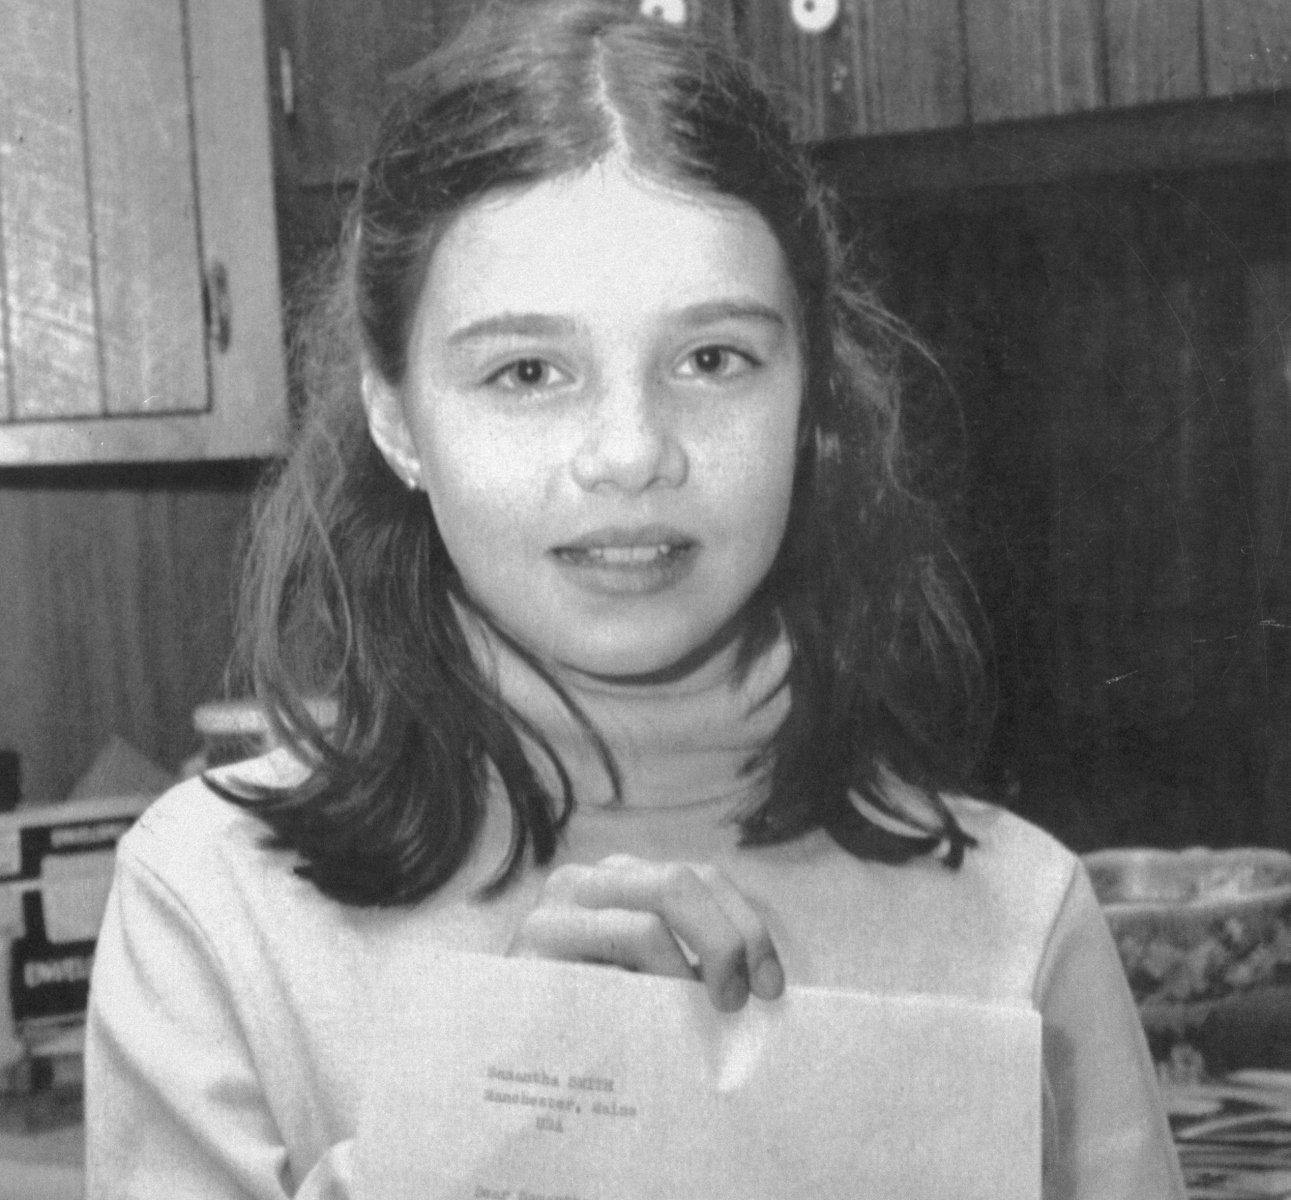 Then-10-year-old Samantha Smith sent a letter to Soviet leader Yuri Andropov pleading for an end to the arms race. She received a letter back from him saying that the Soviet Union was everything possible to avoid nuclear war. He also invited her to visit a Russian youth camp. (Getty)